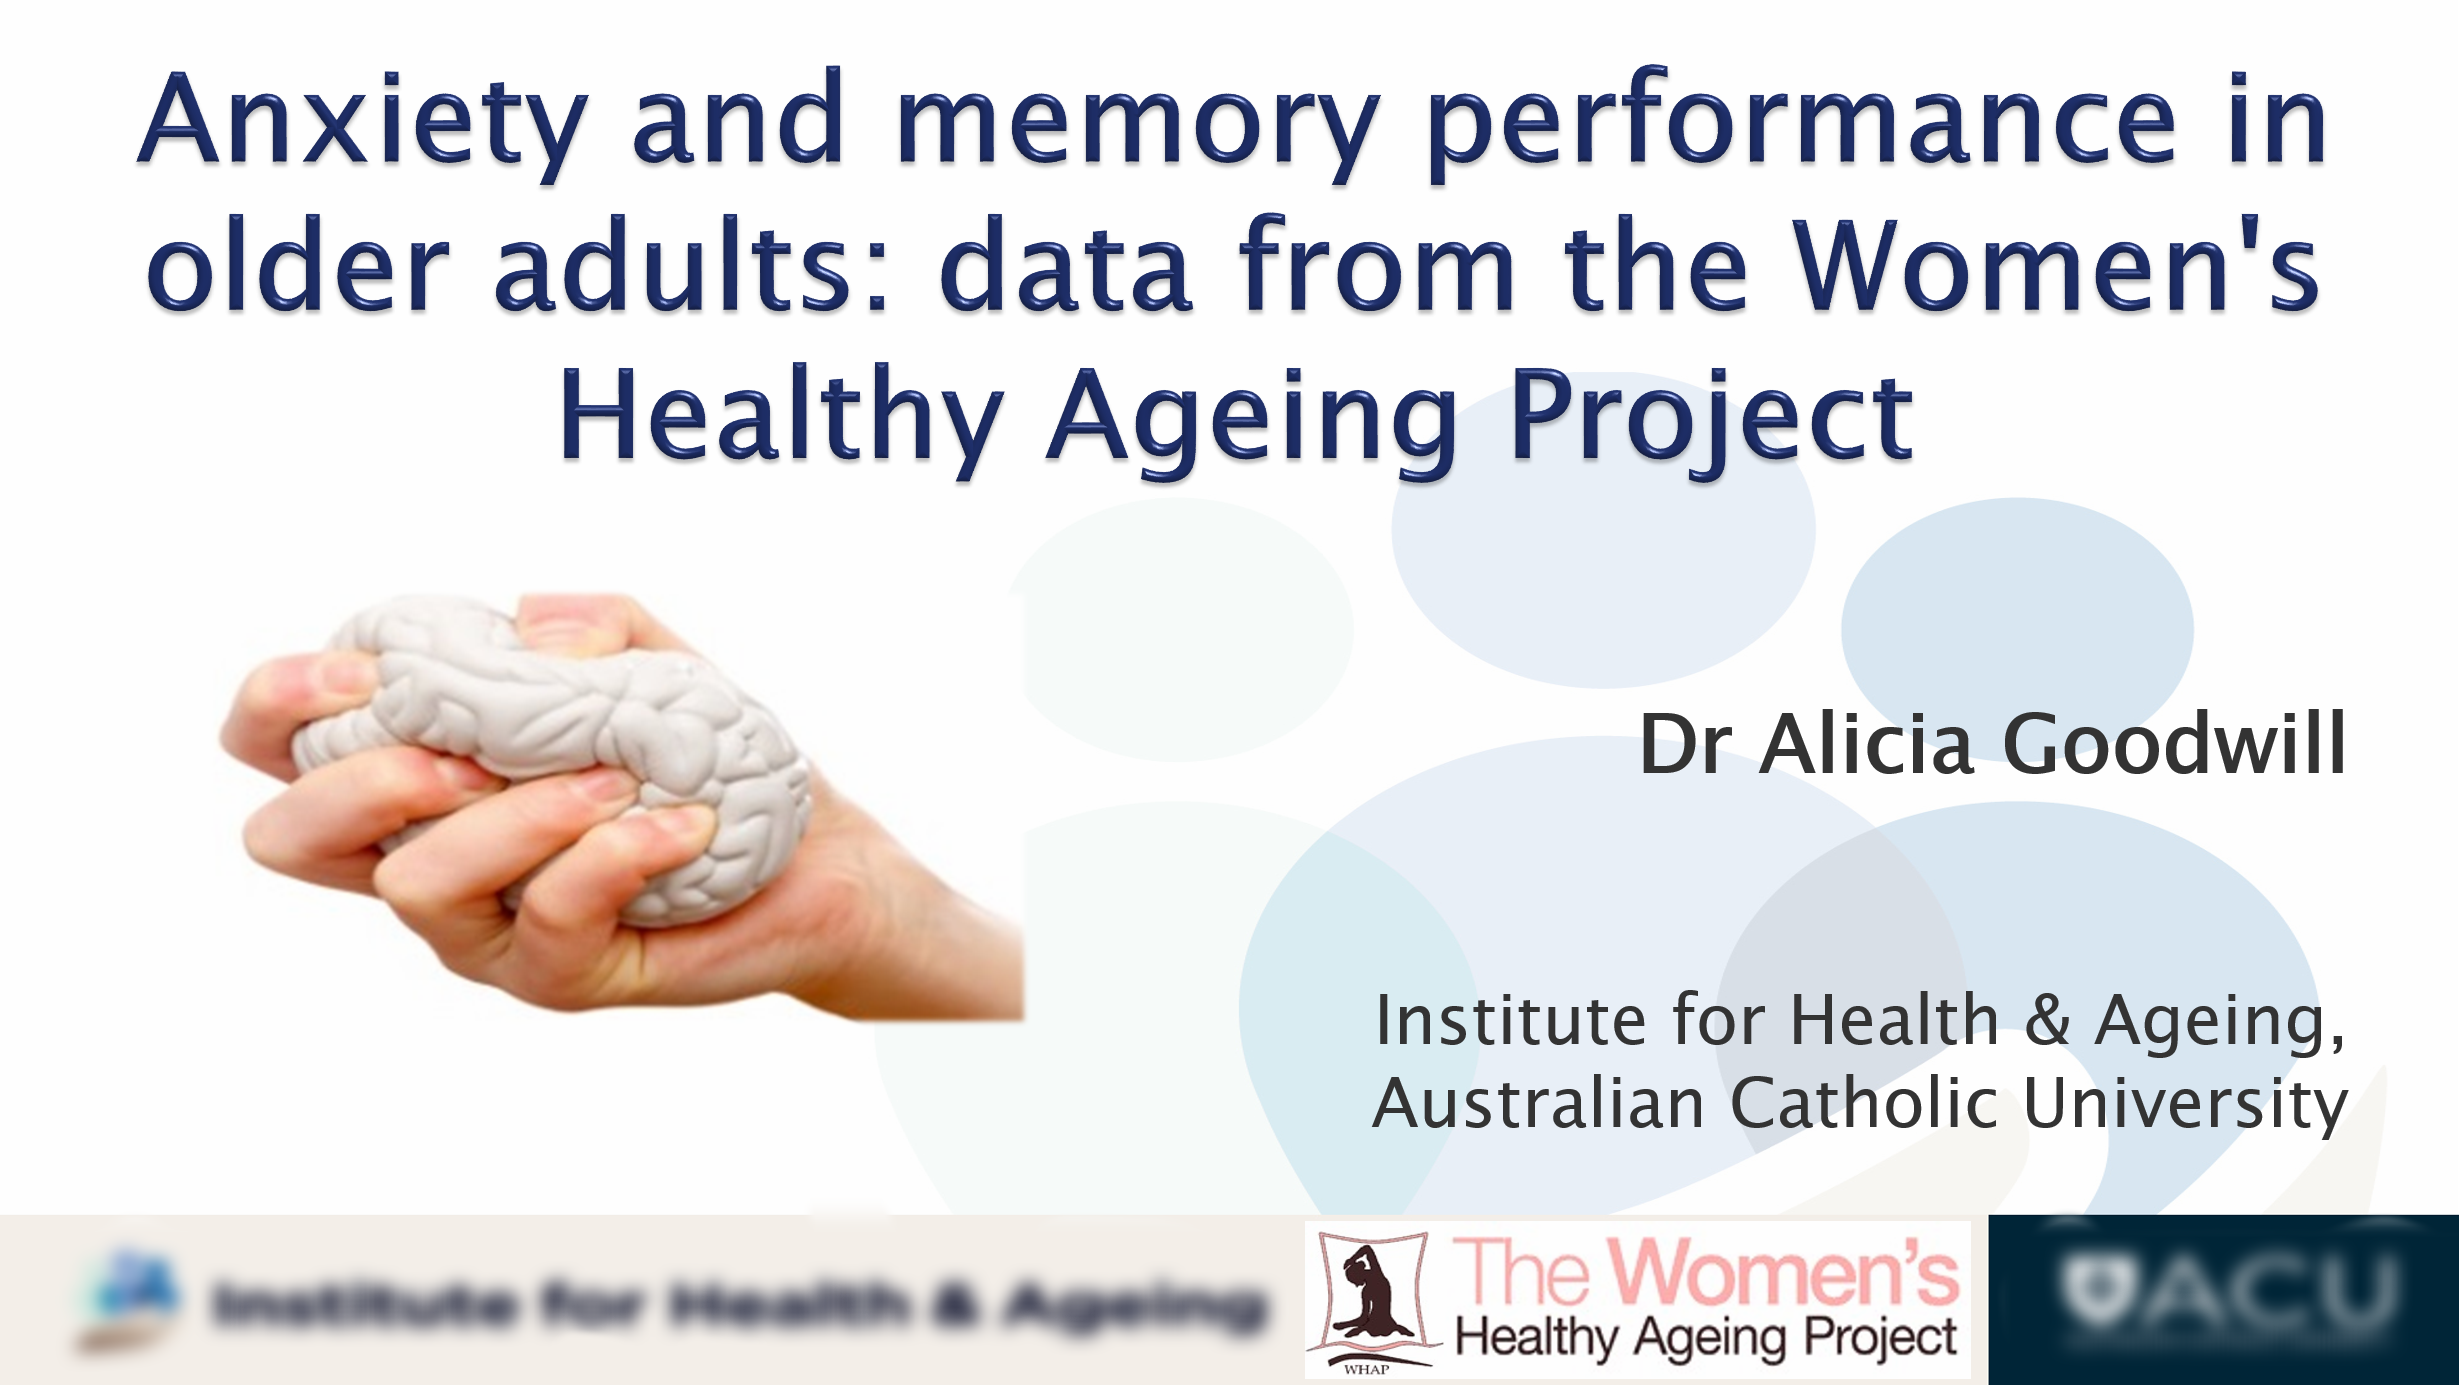 Anxiety and memory performance in older adults - The aim of this study was to examine the associations between late-life anxiety symptoms and verbal episodic memory, as well as the associations between cumulative stress from midlife, and late-life verbal episodic memory, in ageing Australian women.Trends were found for increased severity of anxiety, number of hassles and lower verbal episodic memory, as well as for cumulative severity of stress from midlife (over 20 yrs.) and reduced verbal memory performance in late-life.Citation: Goodwill, A., et al (2017).Anxiety and memory performance in older adults: data from the Women's Healthy Ageing Project. Paper presented at the 18th International Mental Health Conference, Gold Coast, Australia, 21-23 August.